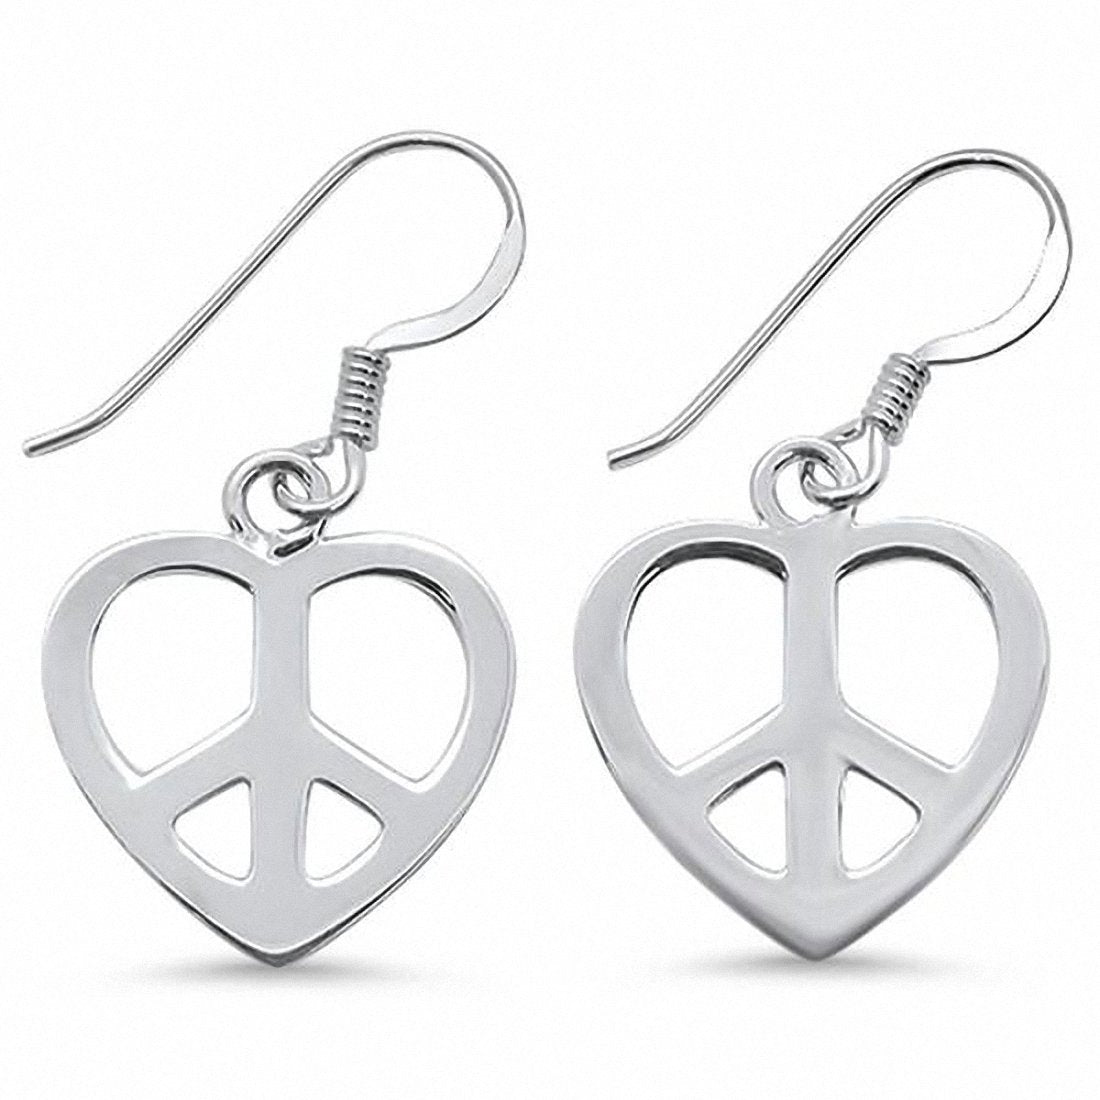 Heart Peace Drop Earrings Fishhook 925 Sterling Silver Choose Color